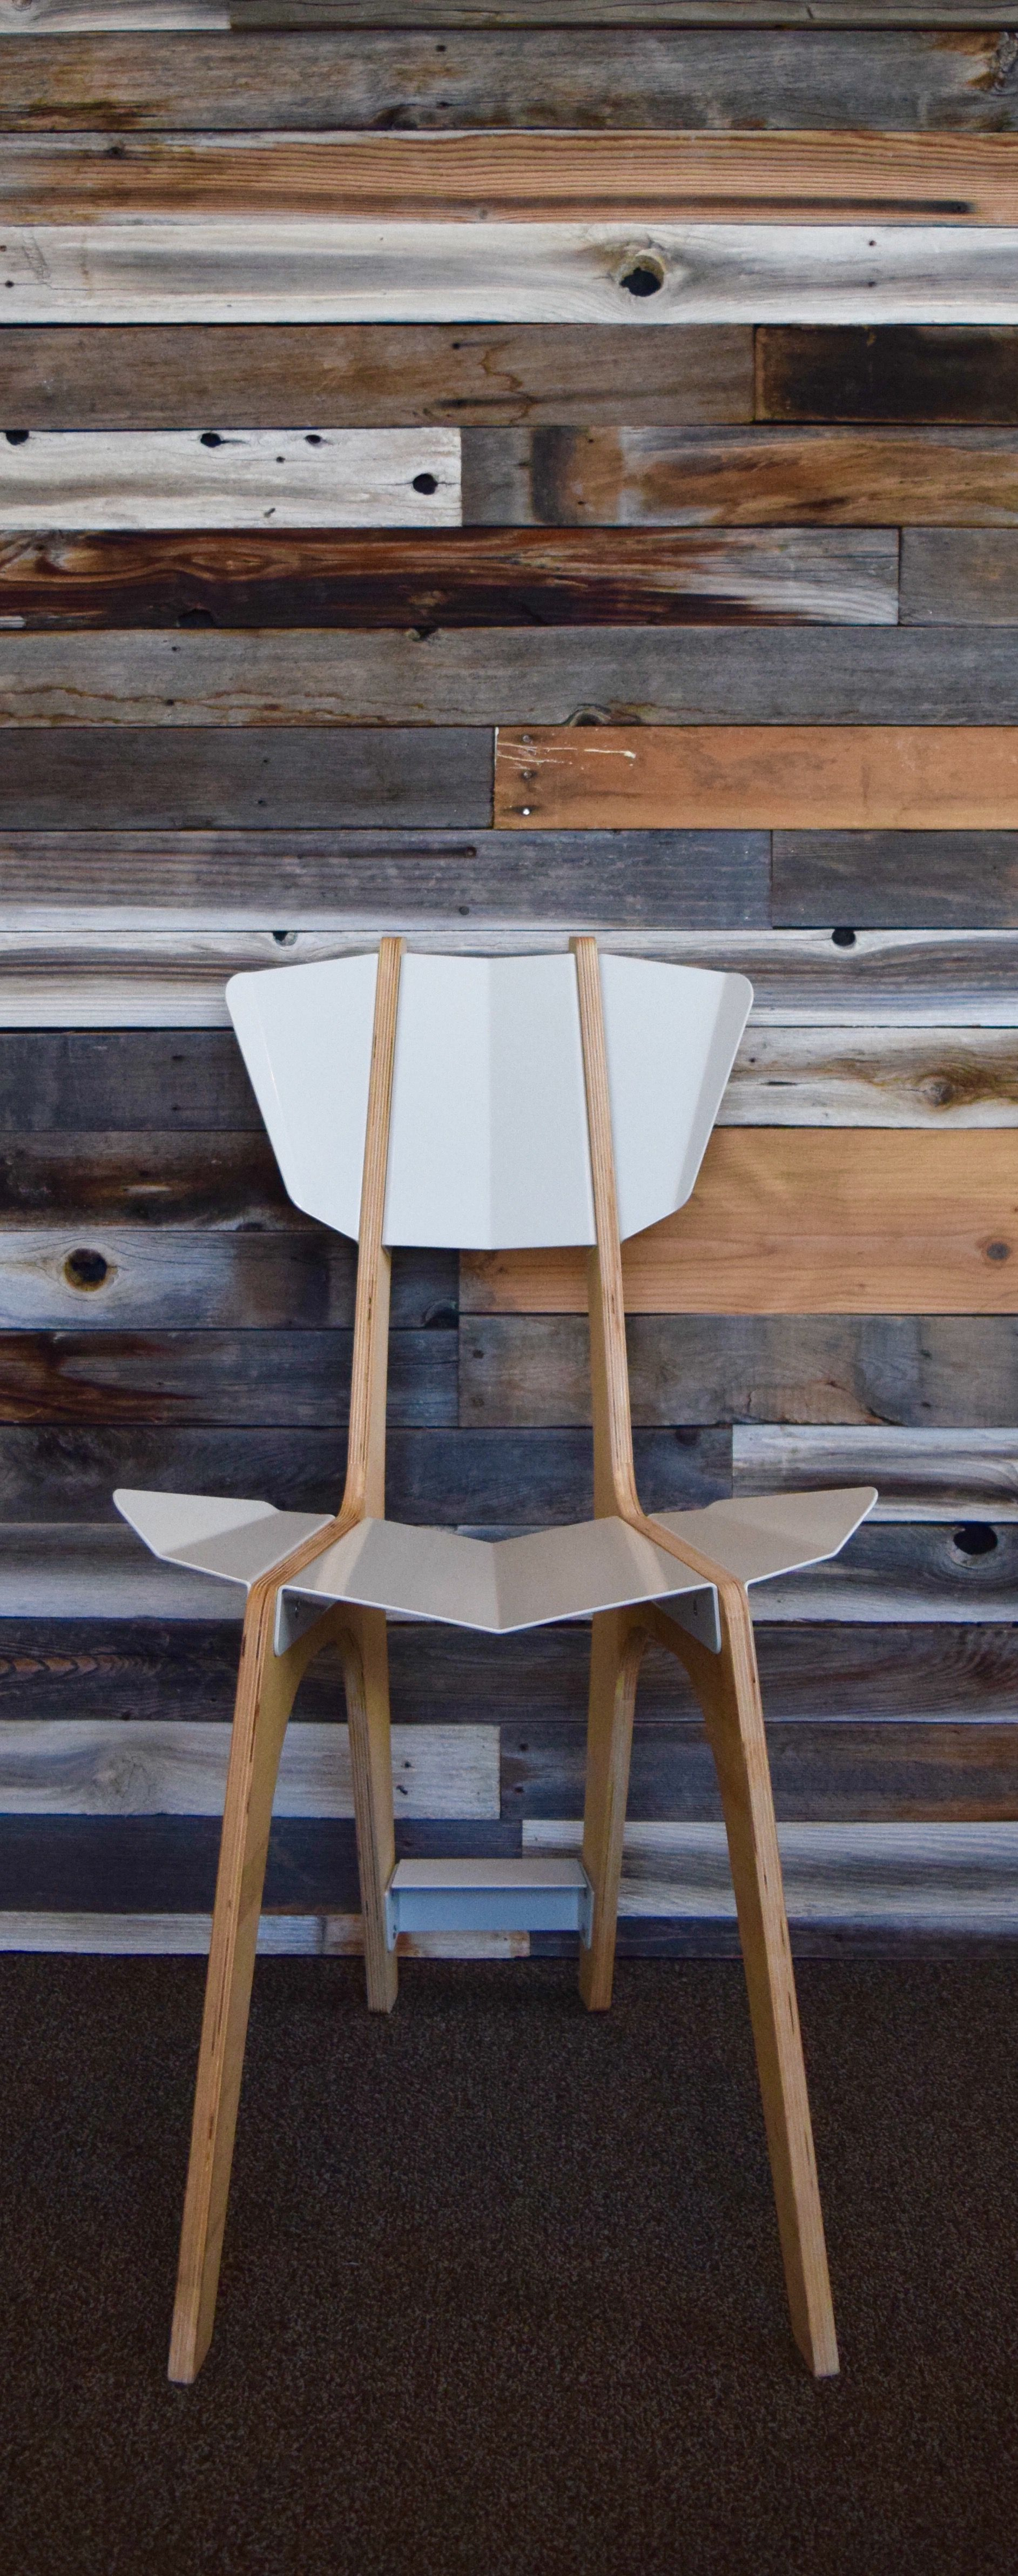 Desert Alchemy Is A Furniture Design Studio In Salt Lake City. This Chair  Uses Laser